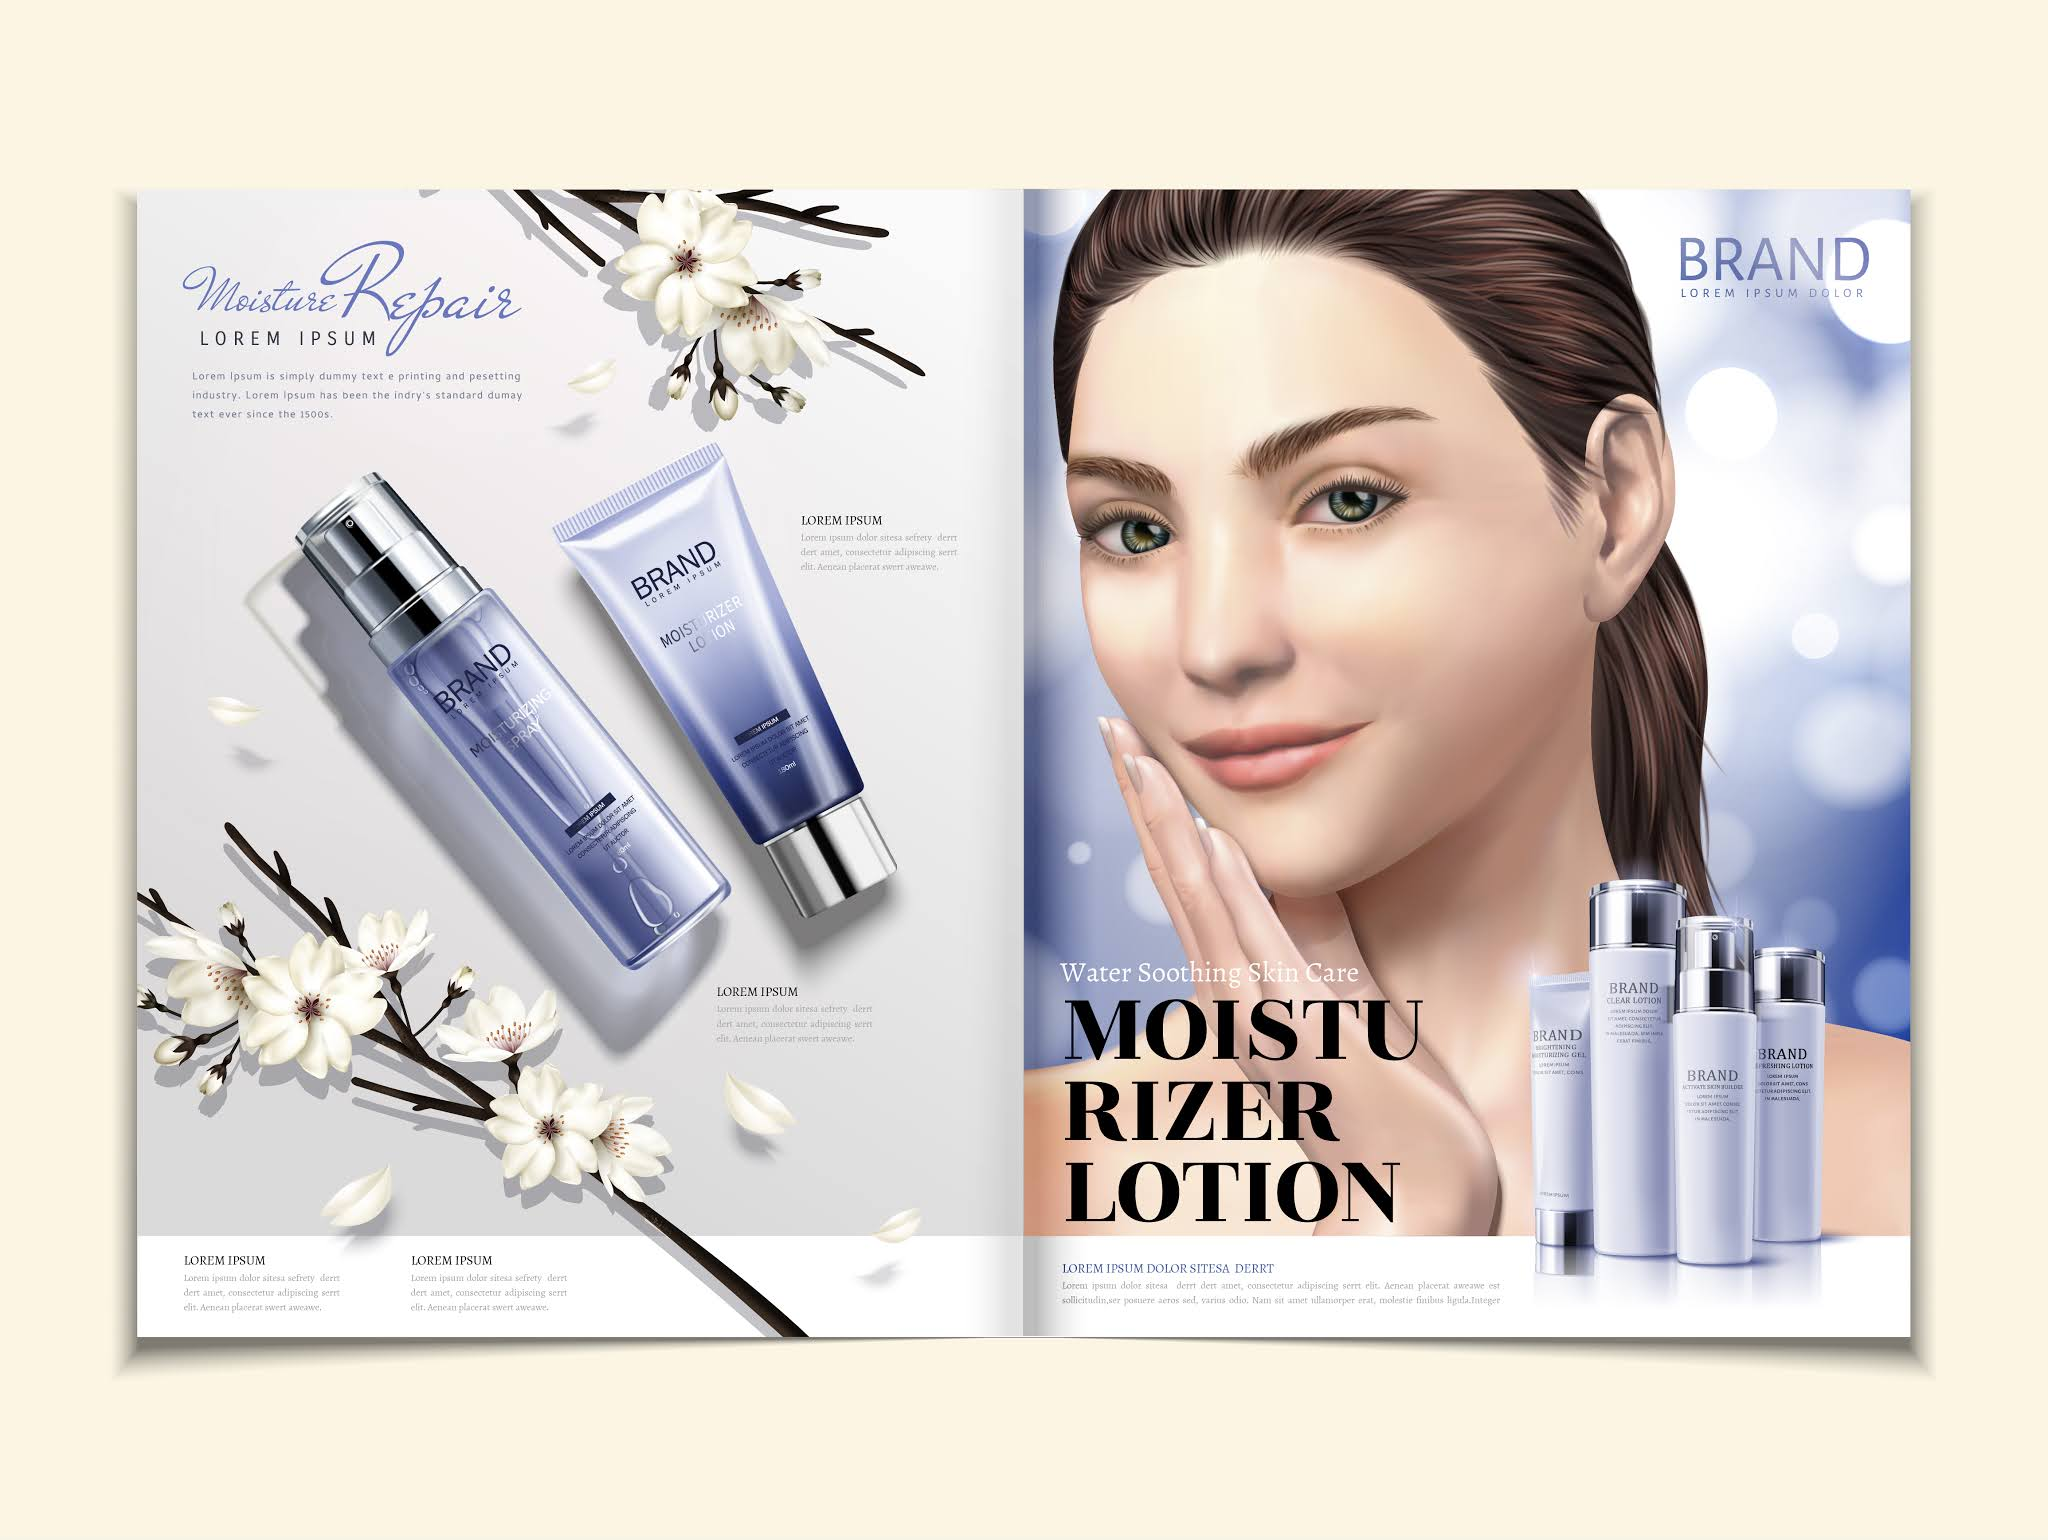 Download the design of a magazine for beauty products in vector format, and you can also convert it into a Photoshop file